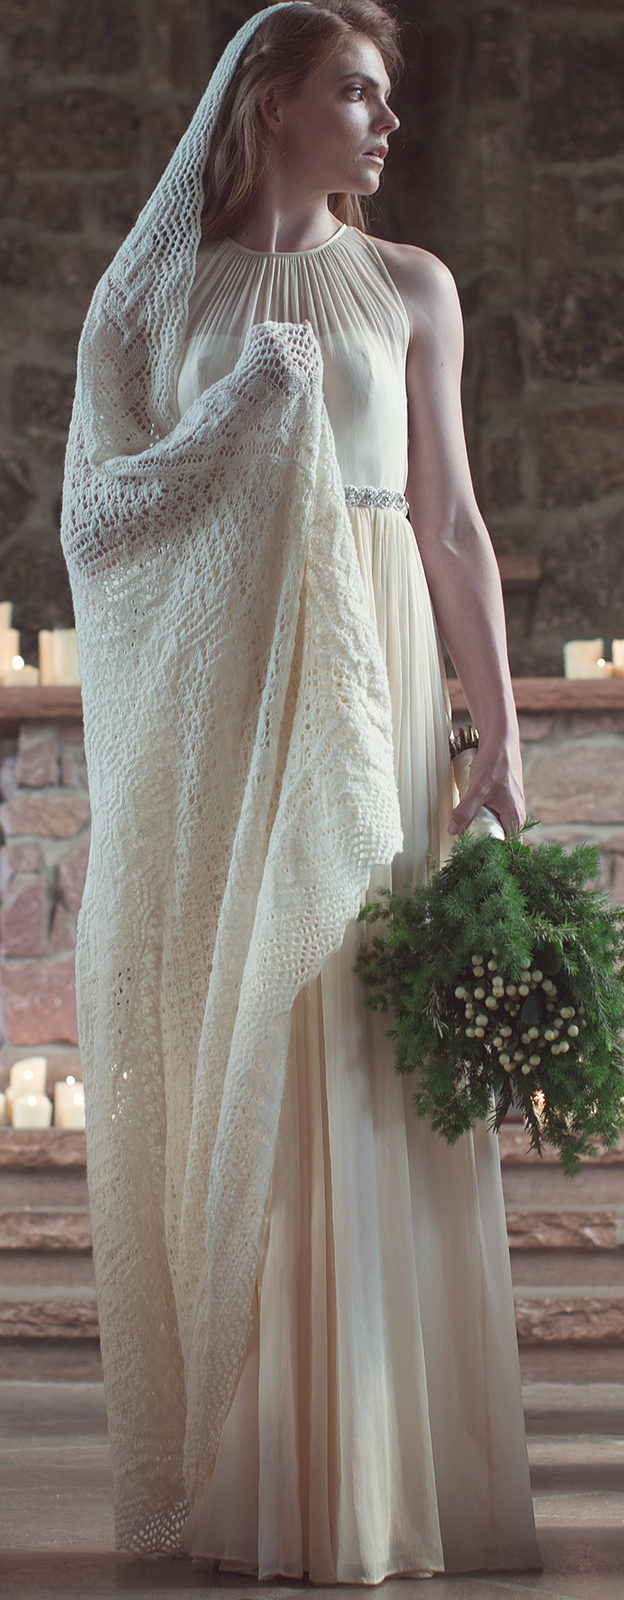 Knitting Pattern for Maria's Veil